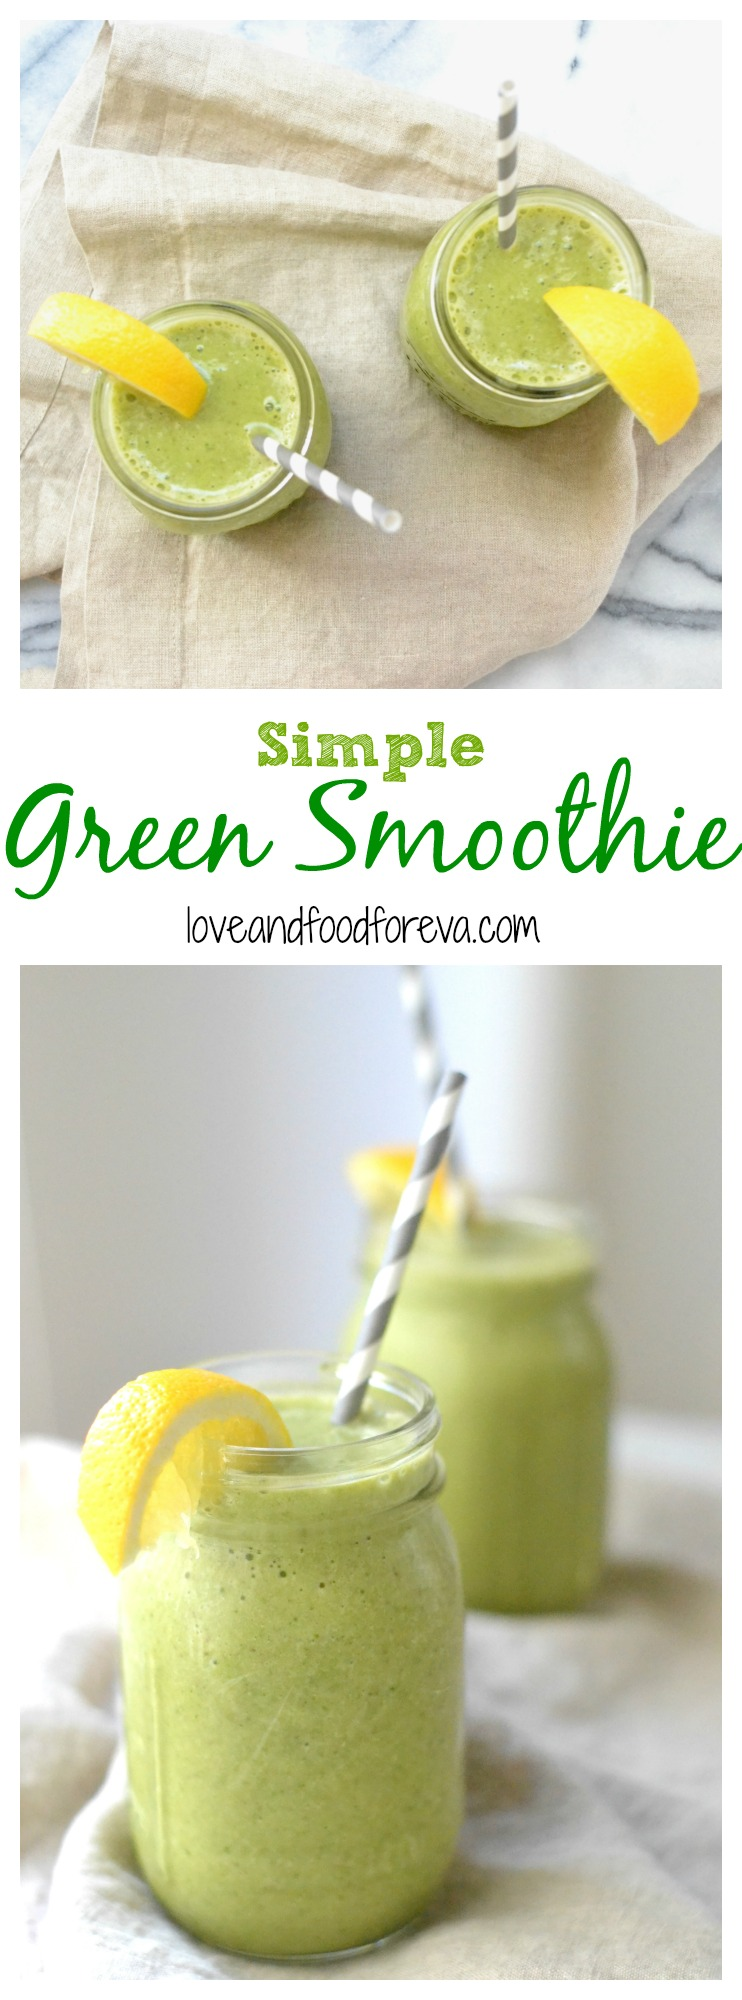 Simple Green Smoothie - so easy to customize it to your liking!